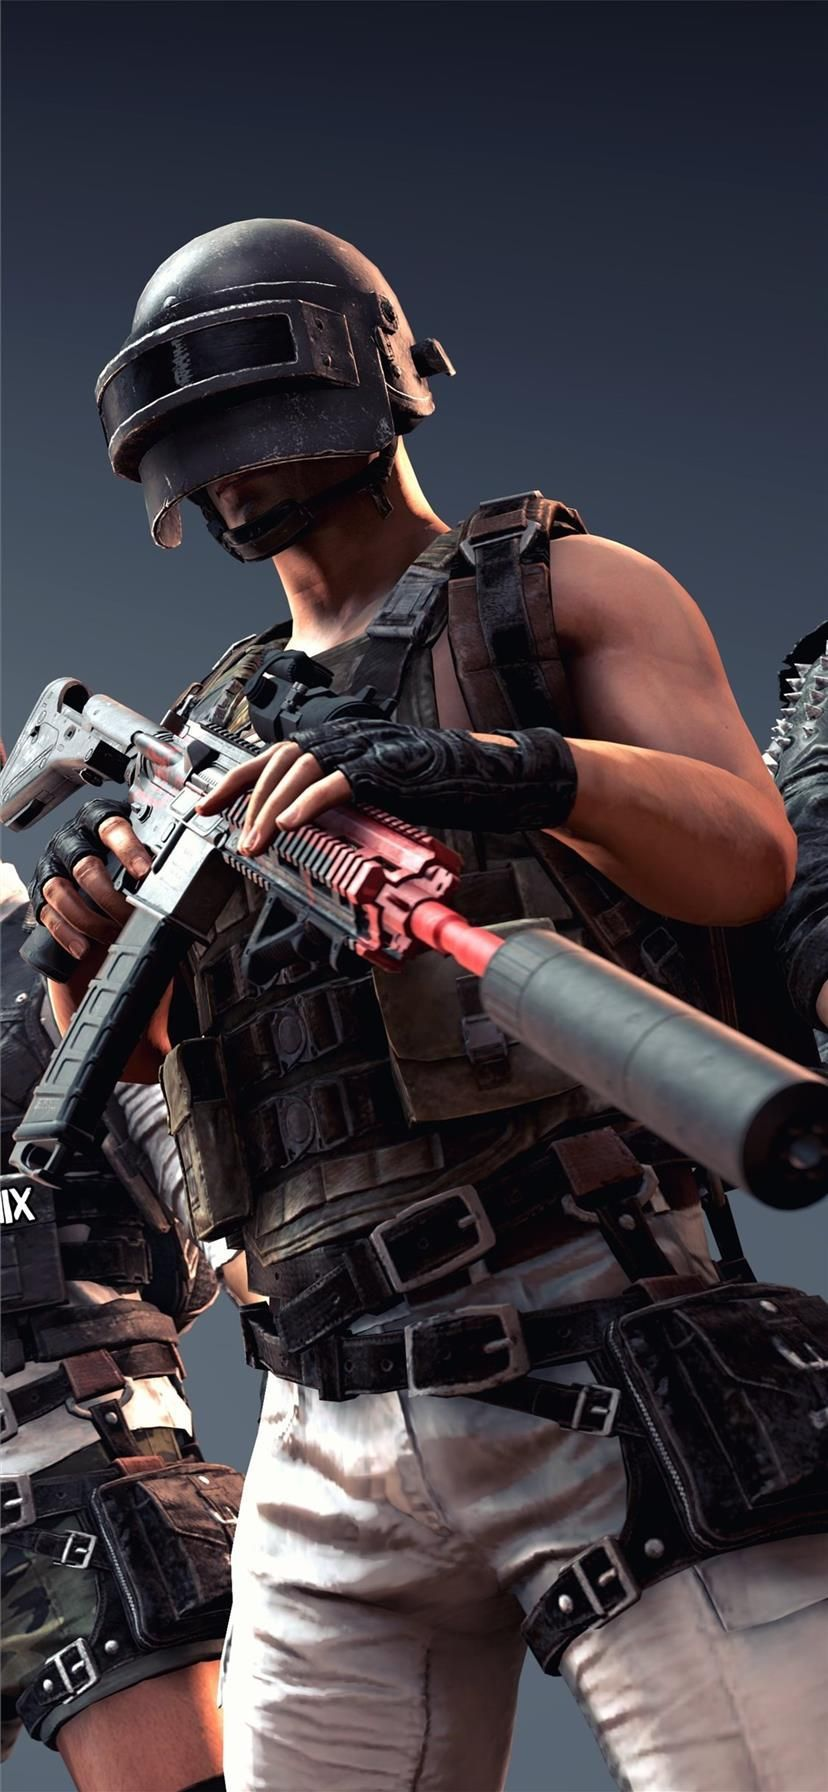 2019 Pubg 5k Iphone X Wallpapers Free Download 4k In 2020 Android Phone Backgrounds Mobile Wallpaper Android Hd Wallpapers For Mobile